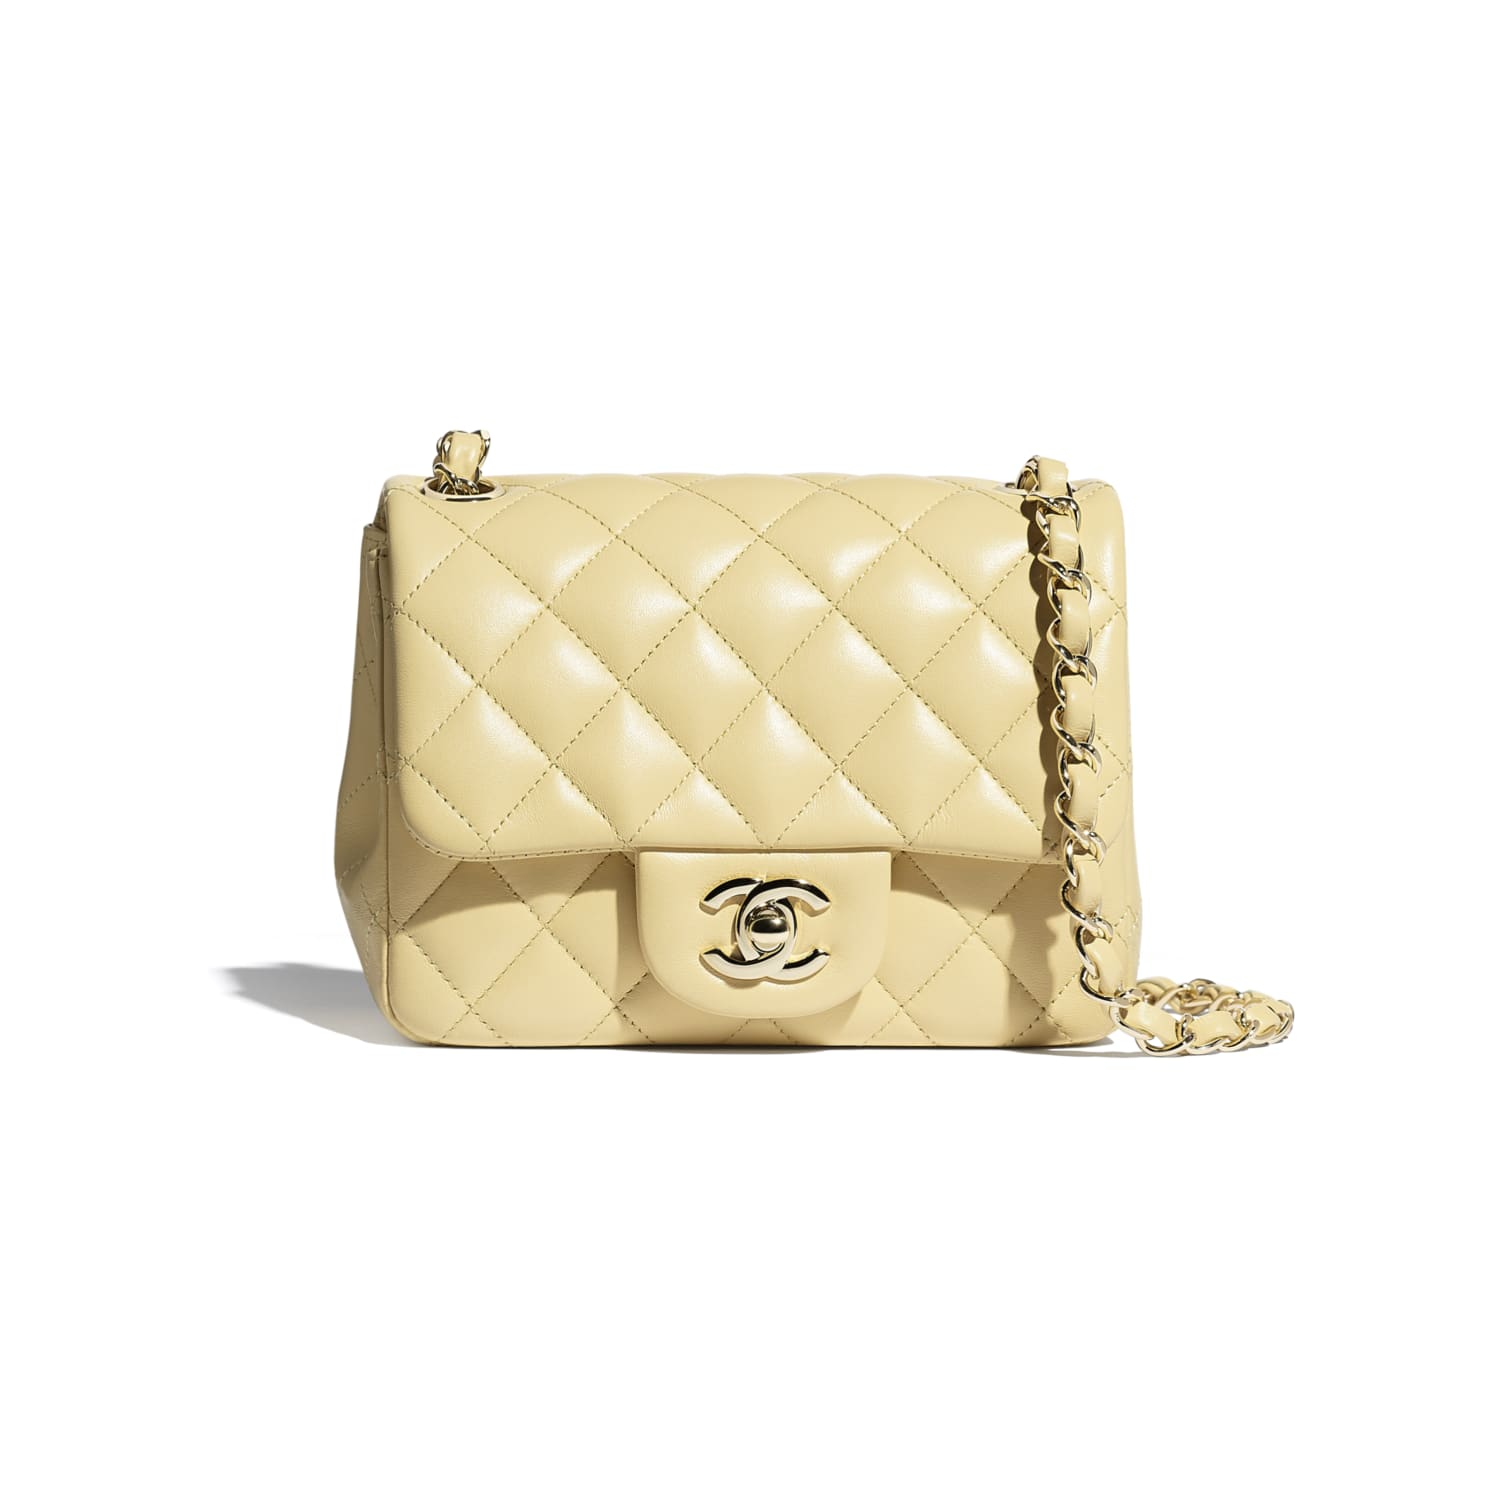 chanel-mini-flap-bag-lambskin-gold-tone-metal